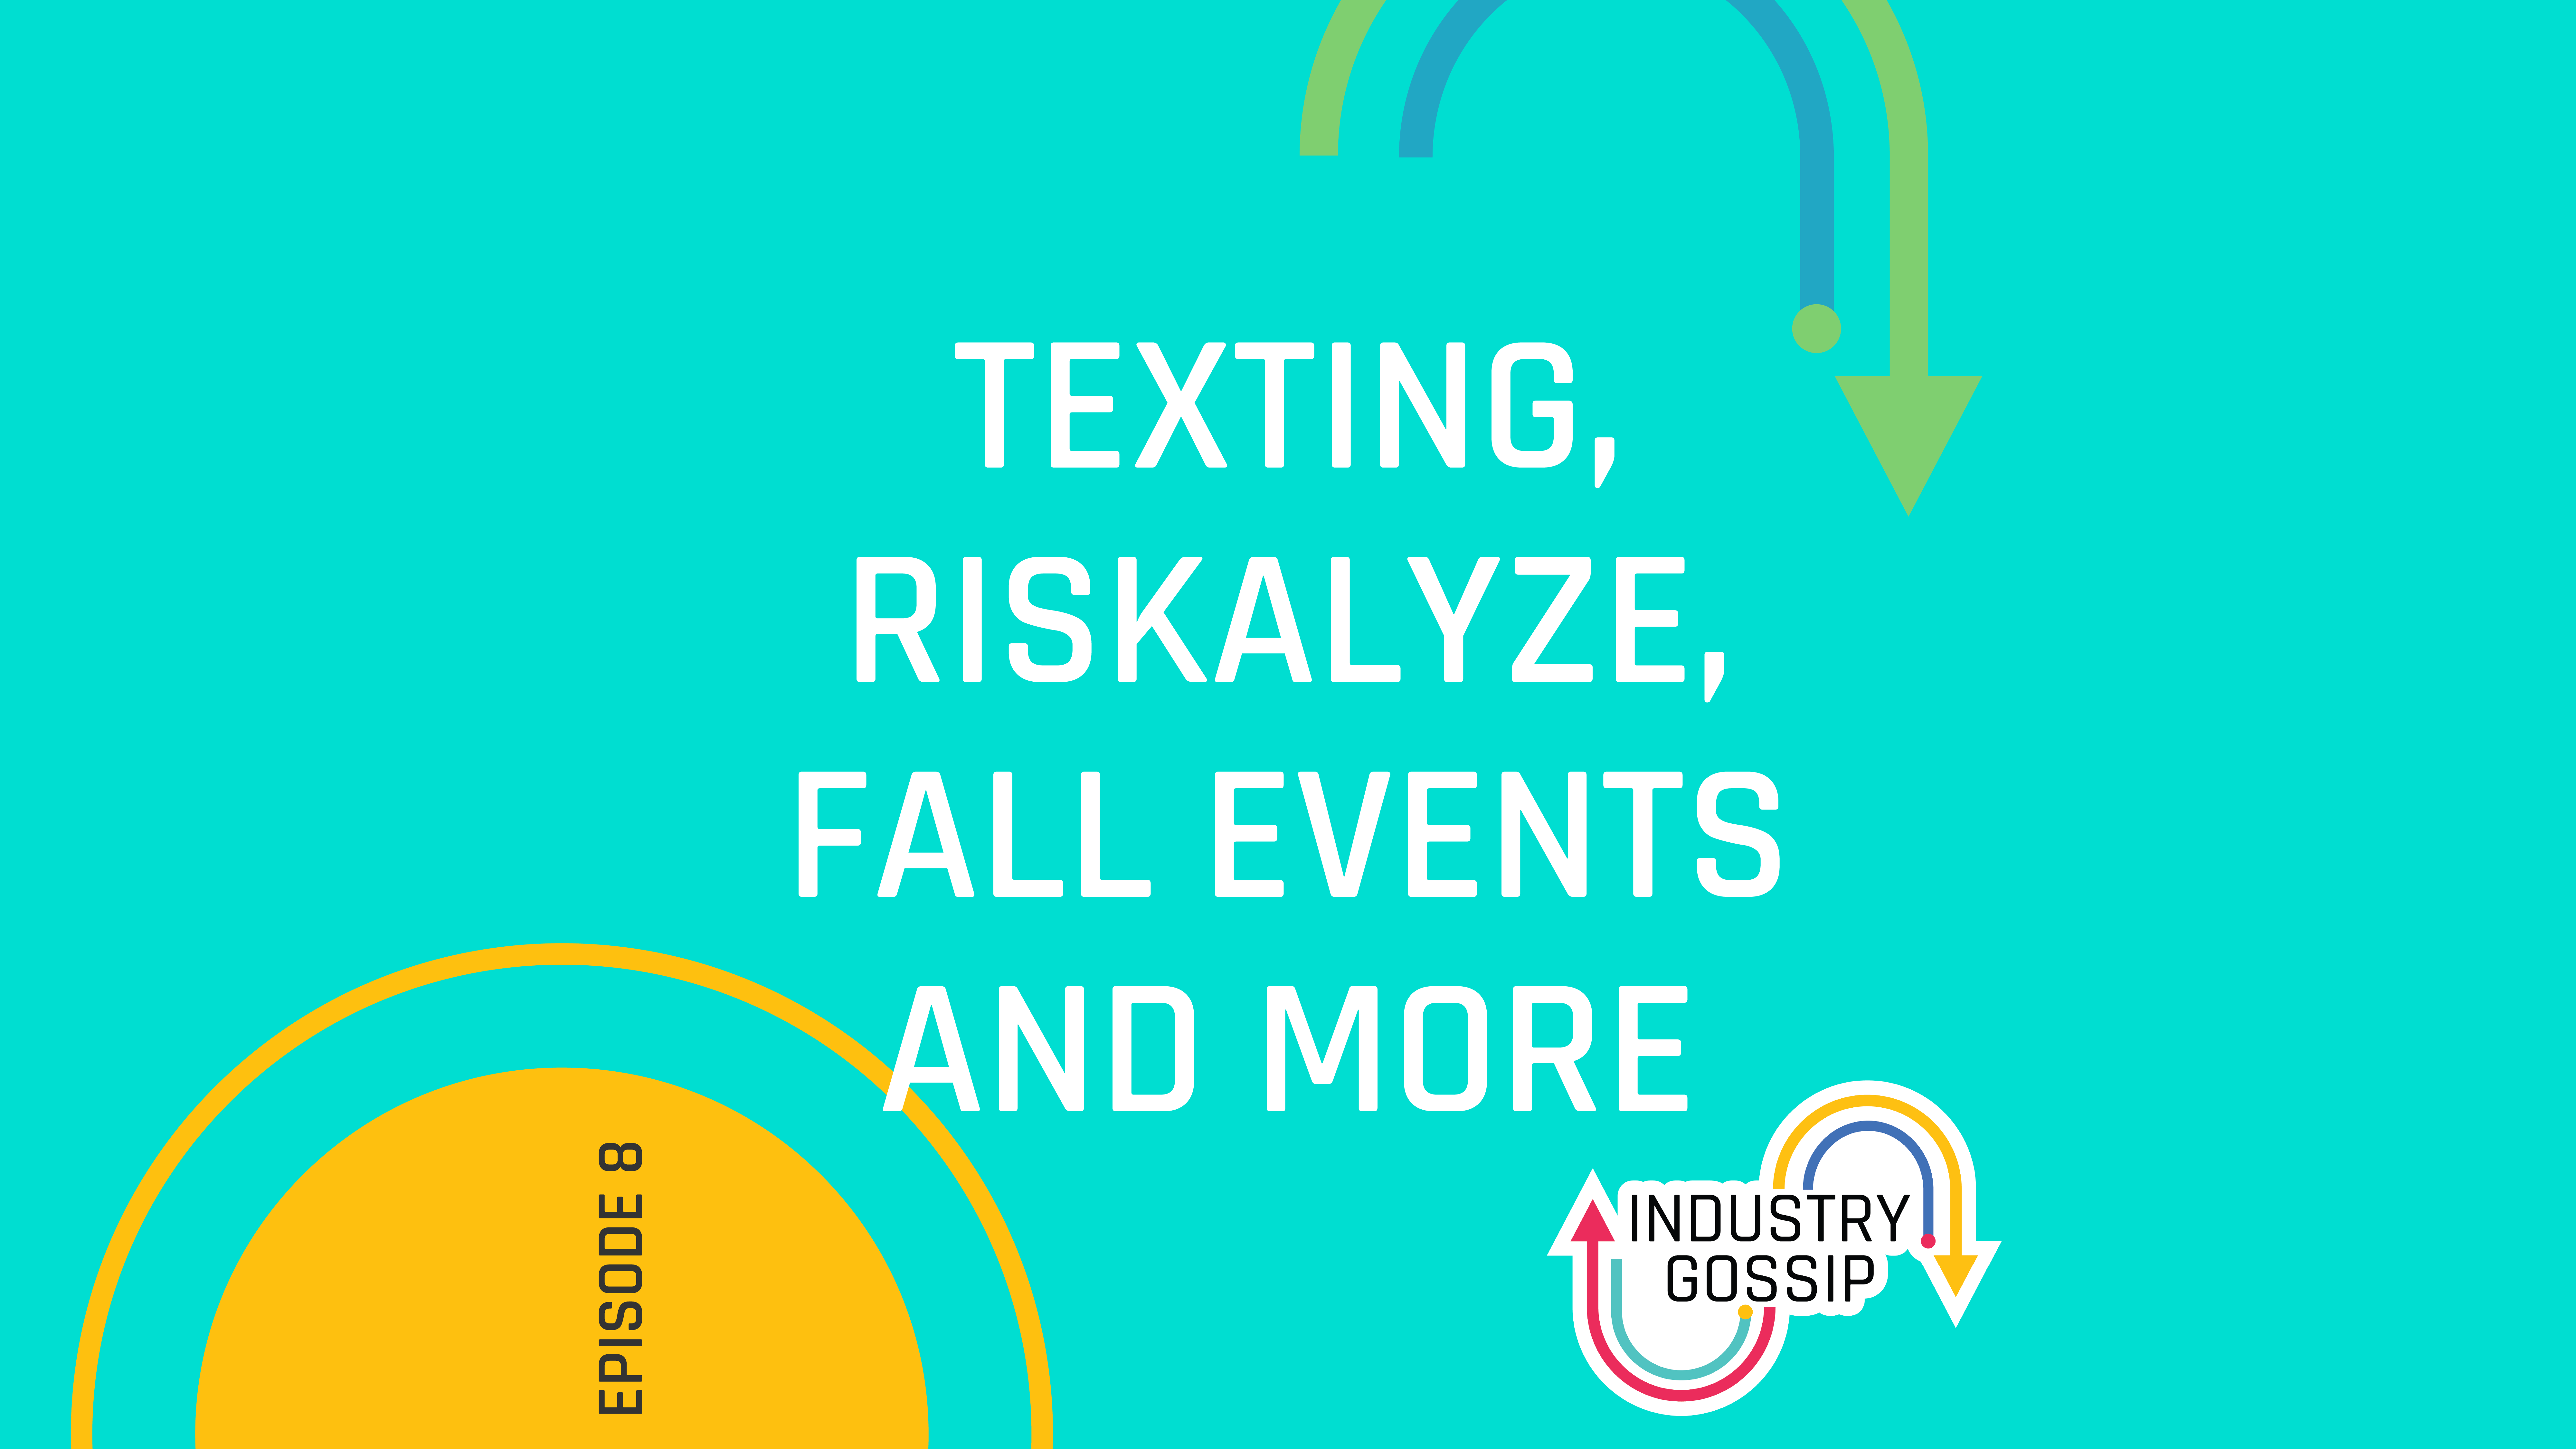 Industry Gossip (E8)  Texting, Riskalyze, Fall Events and more